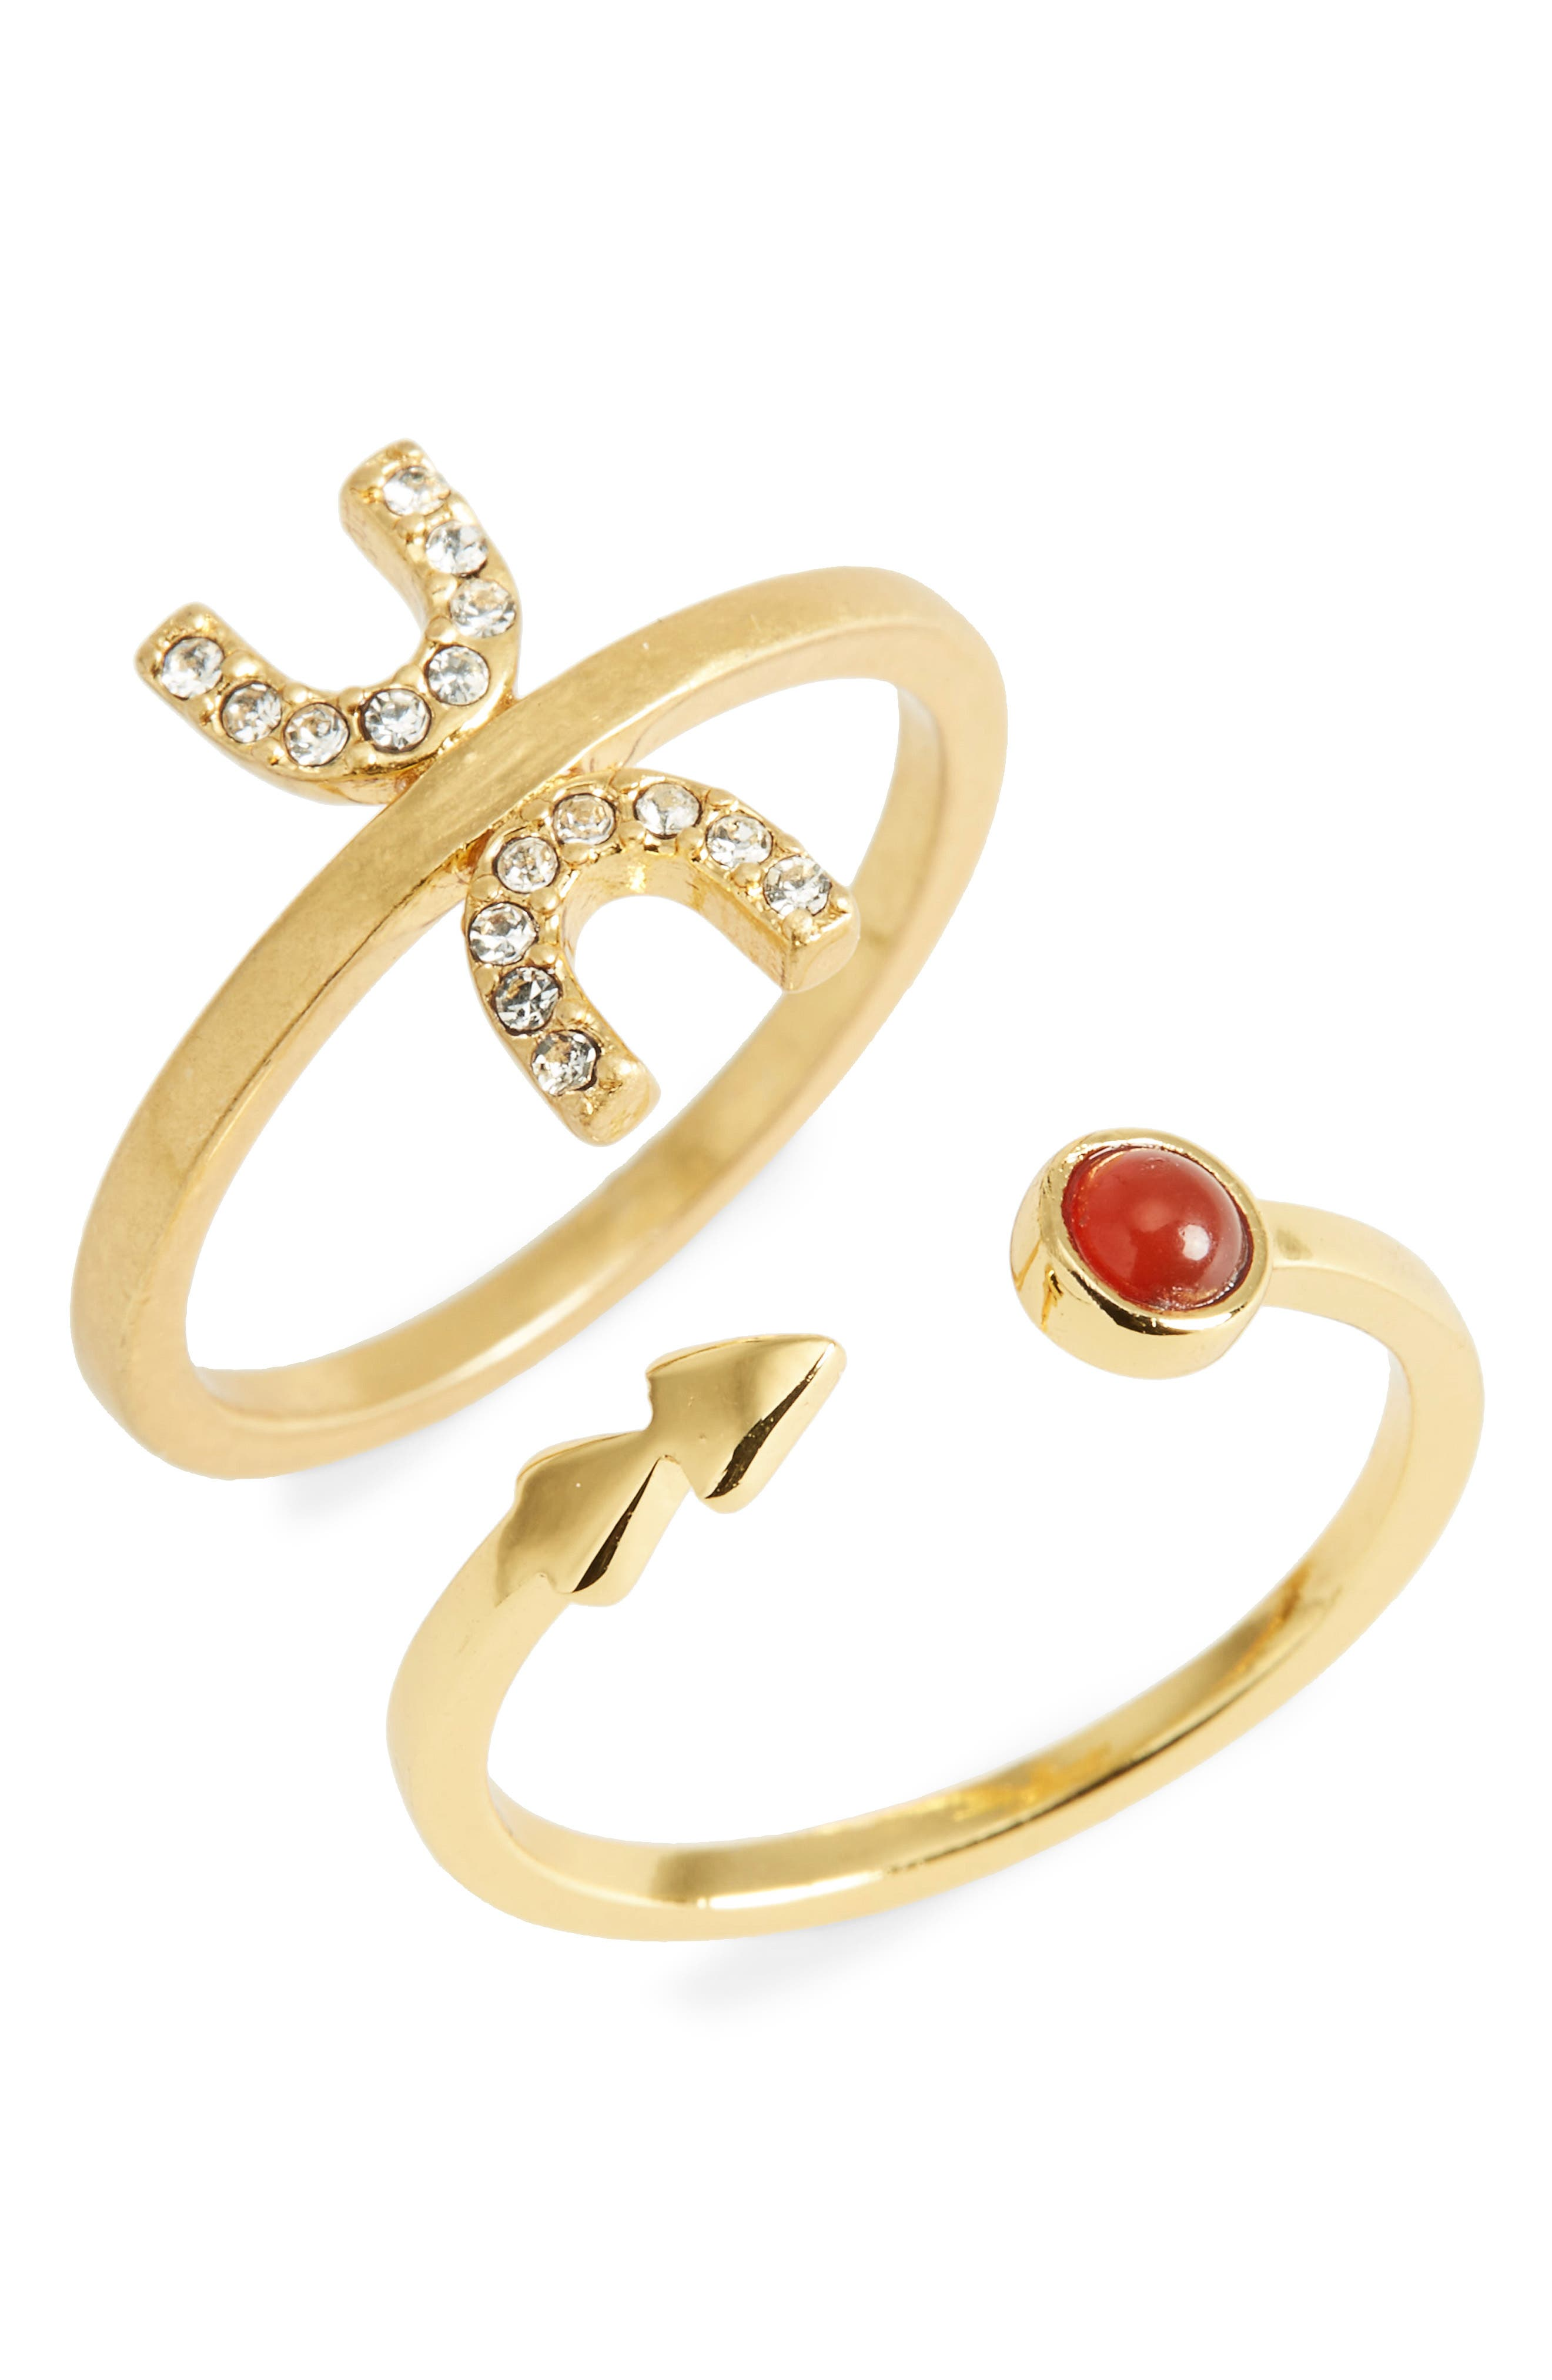 Tiny Jewels Set of 2 Stacking Rings,                         Main,                         color, Vintage Gold